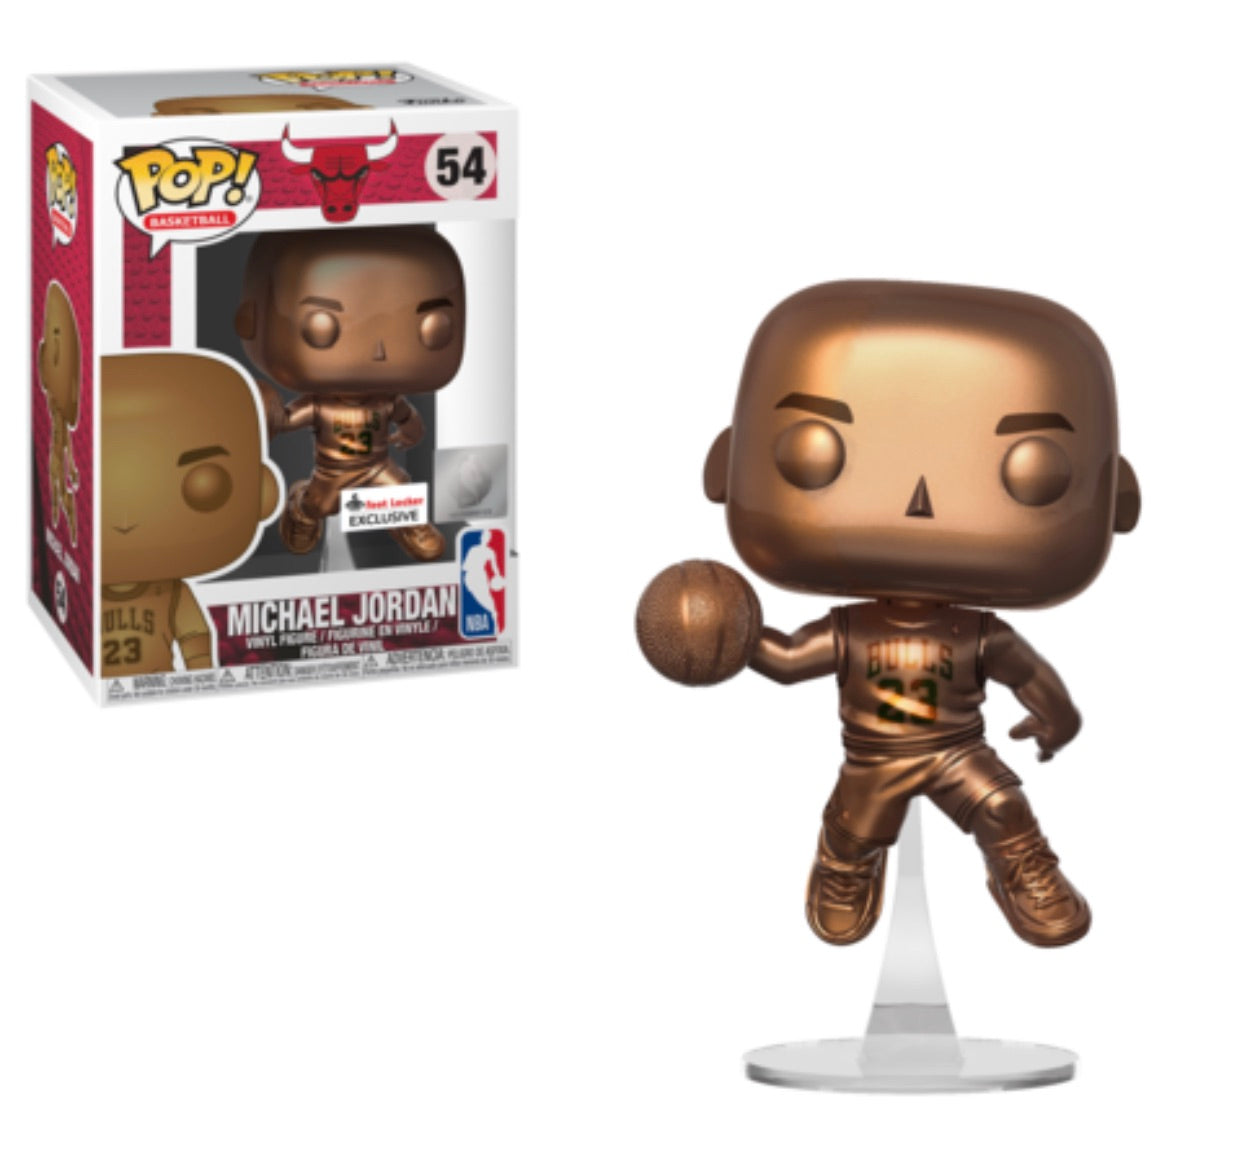 Preorder Funko Pop! Michael Jordan Chrome (Footlocker Exclusive)